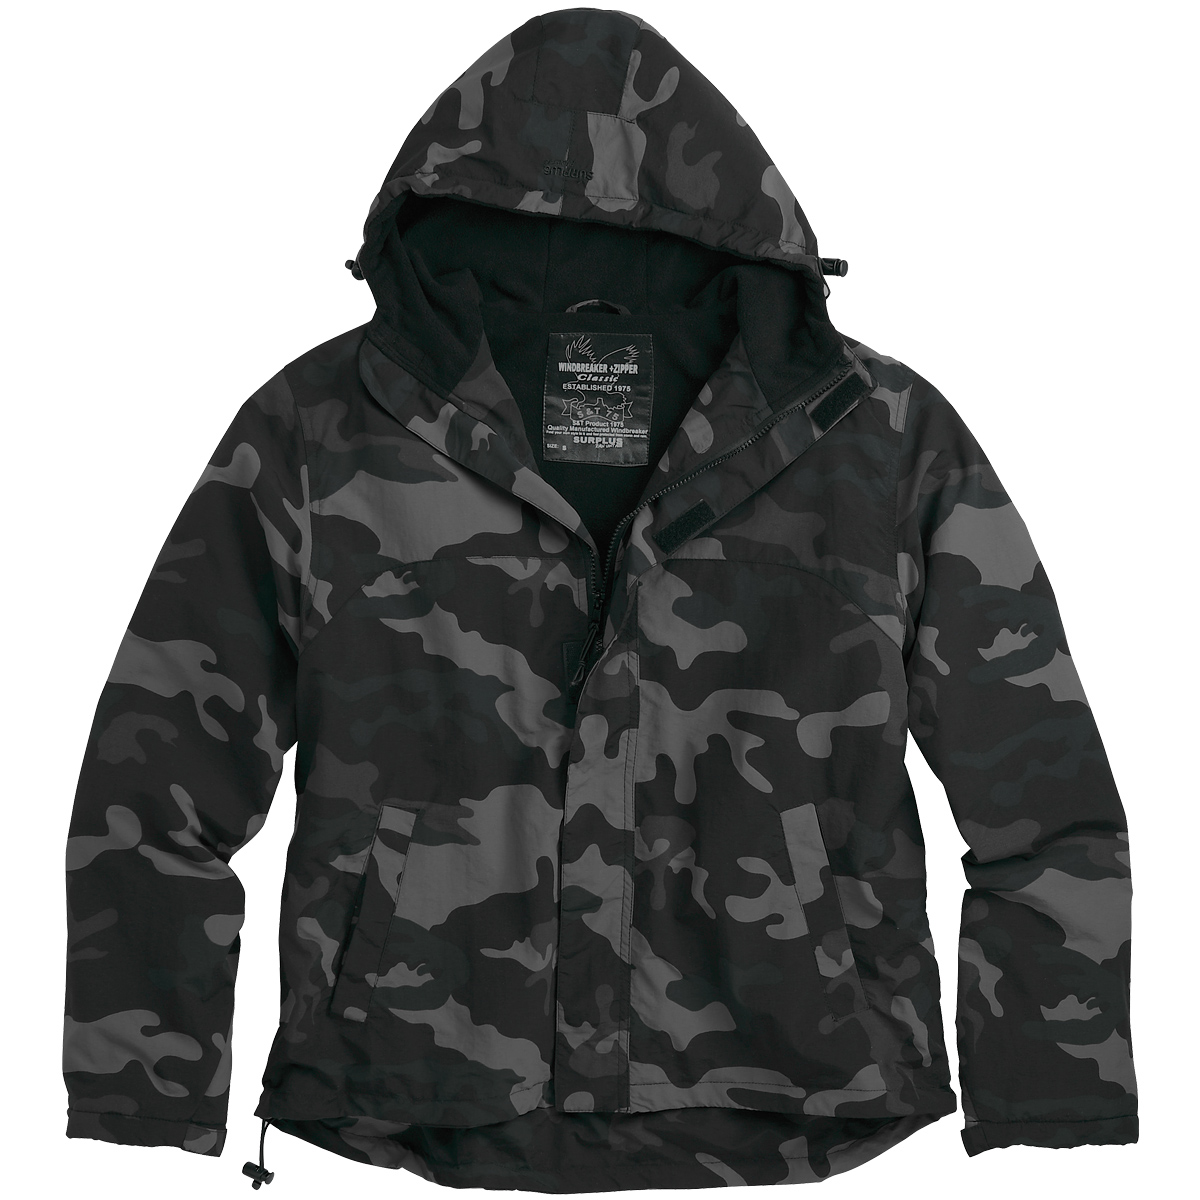 d0bfadff587a1 Details about SURPLUS MENS WINDBREAKER HOODED JACKET with FLEECE LINING  BLACK CAMOUFLAGE S-XXL